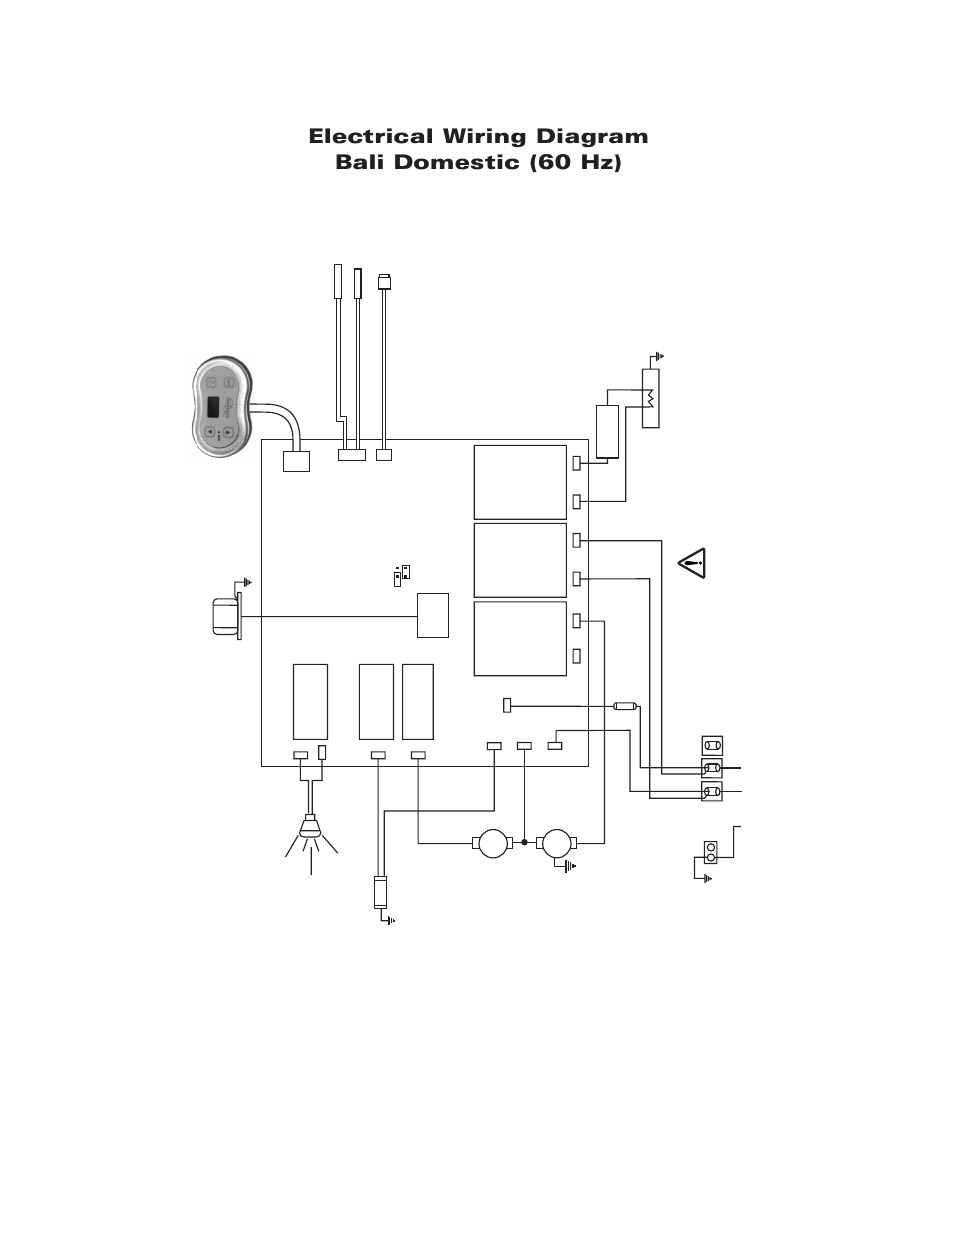 hight resolution of electrical wiring diagrams bali domestic 60 hz wiring diagram bali domestic 60 hz sundance spas maxxus user manual page 31 37